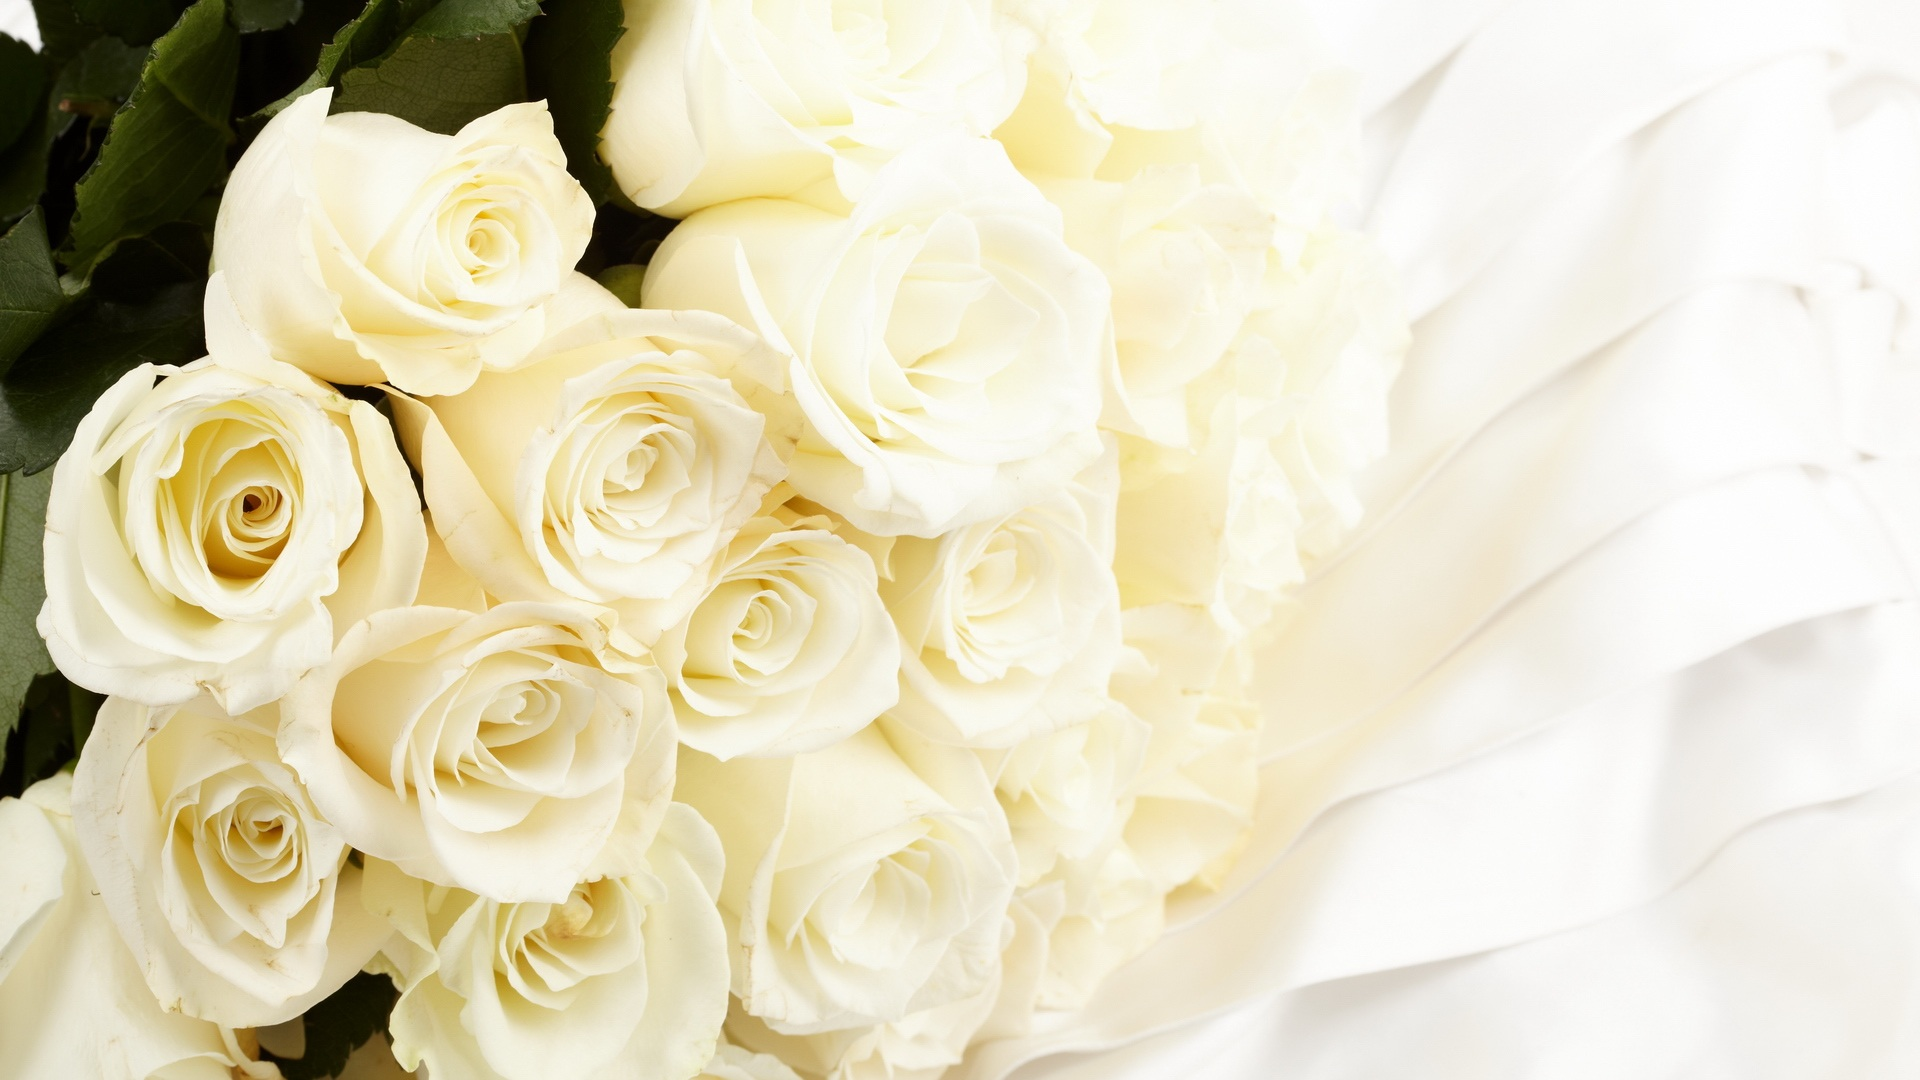 White Images White Rose Hd Wallpaper And Background Photos 34727328